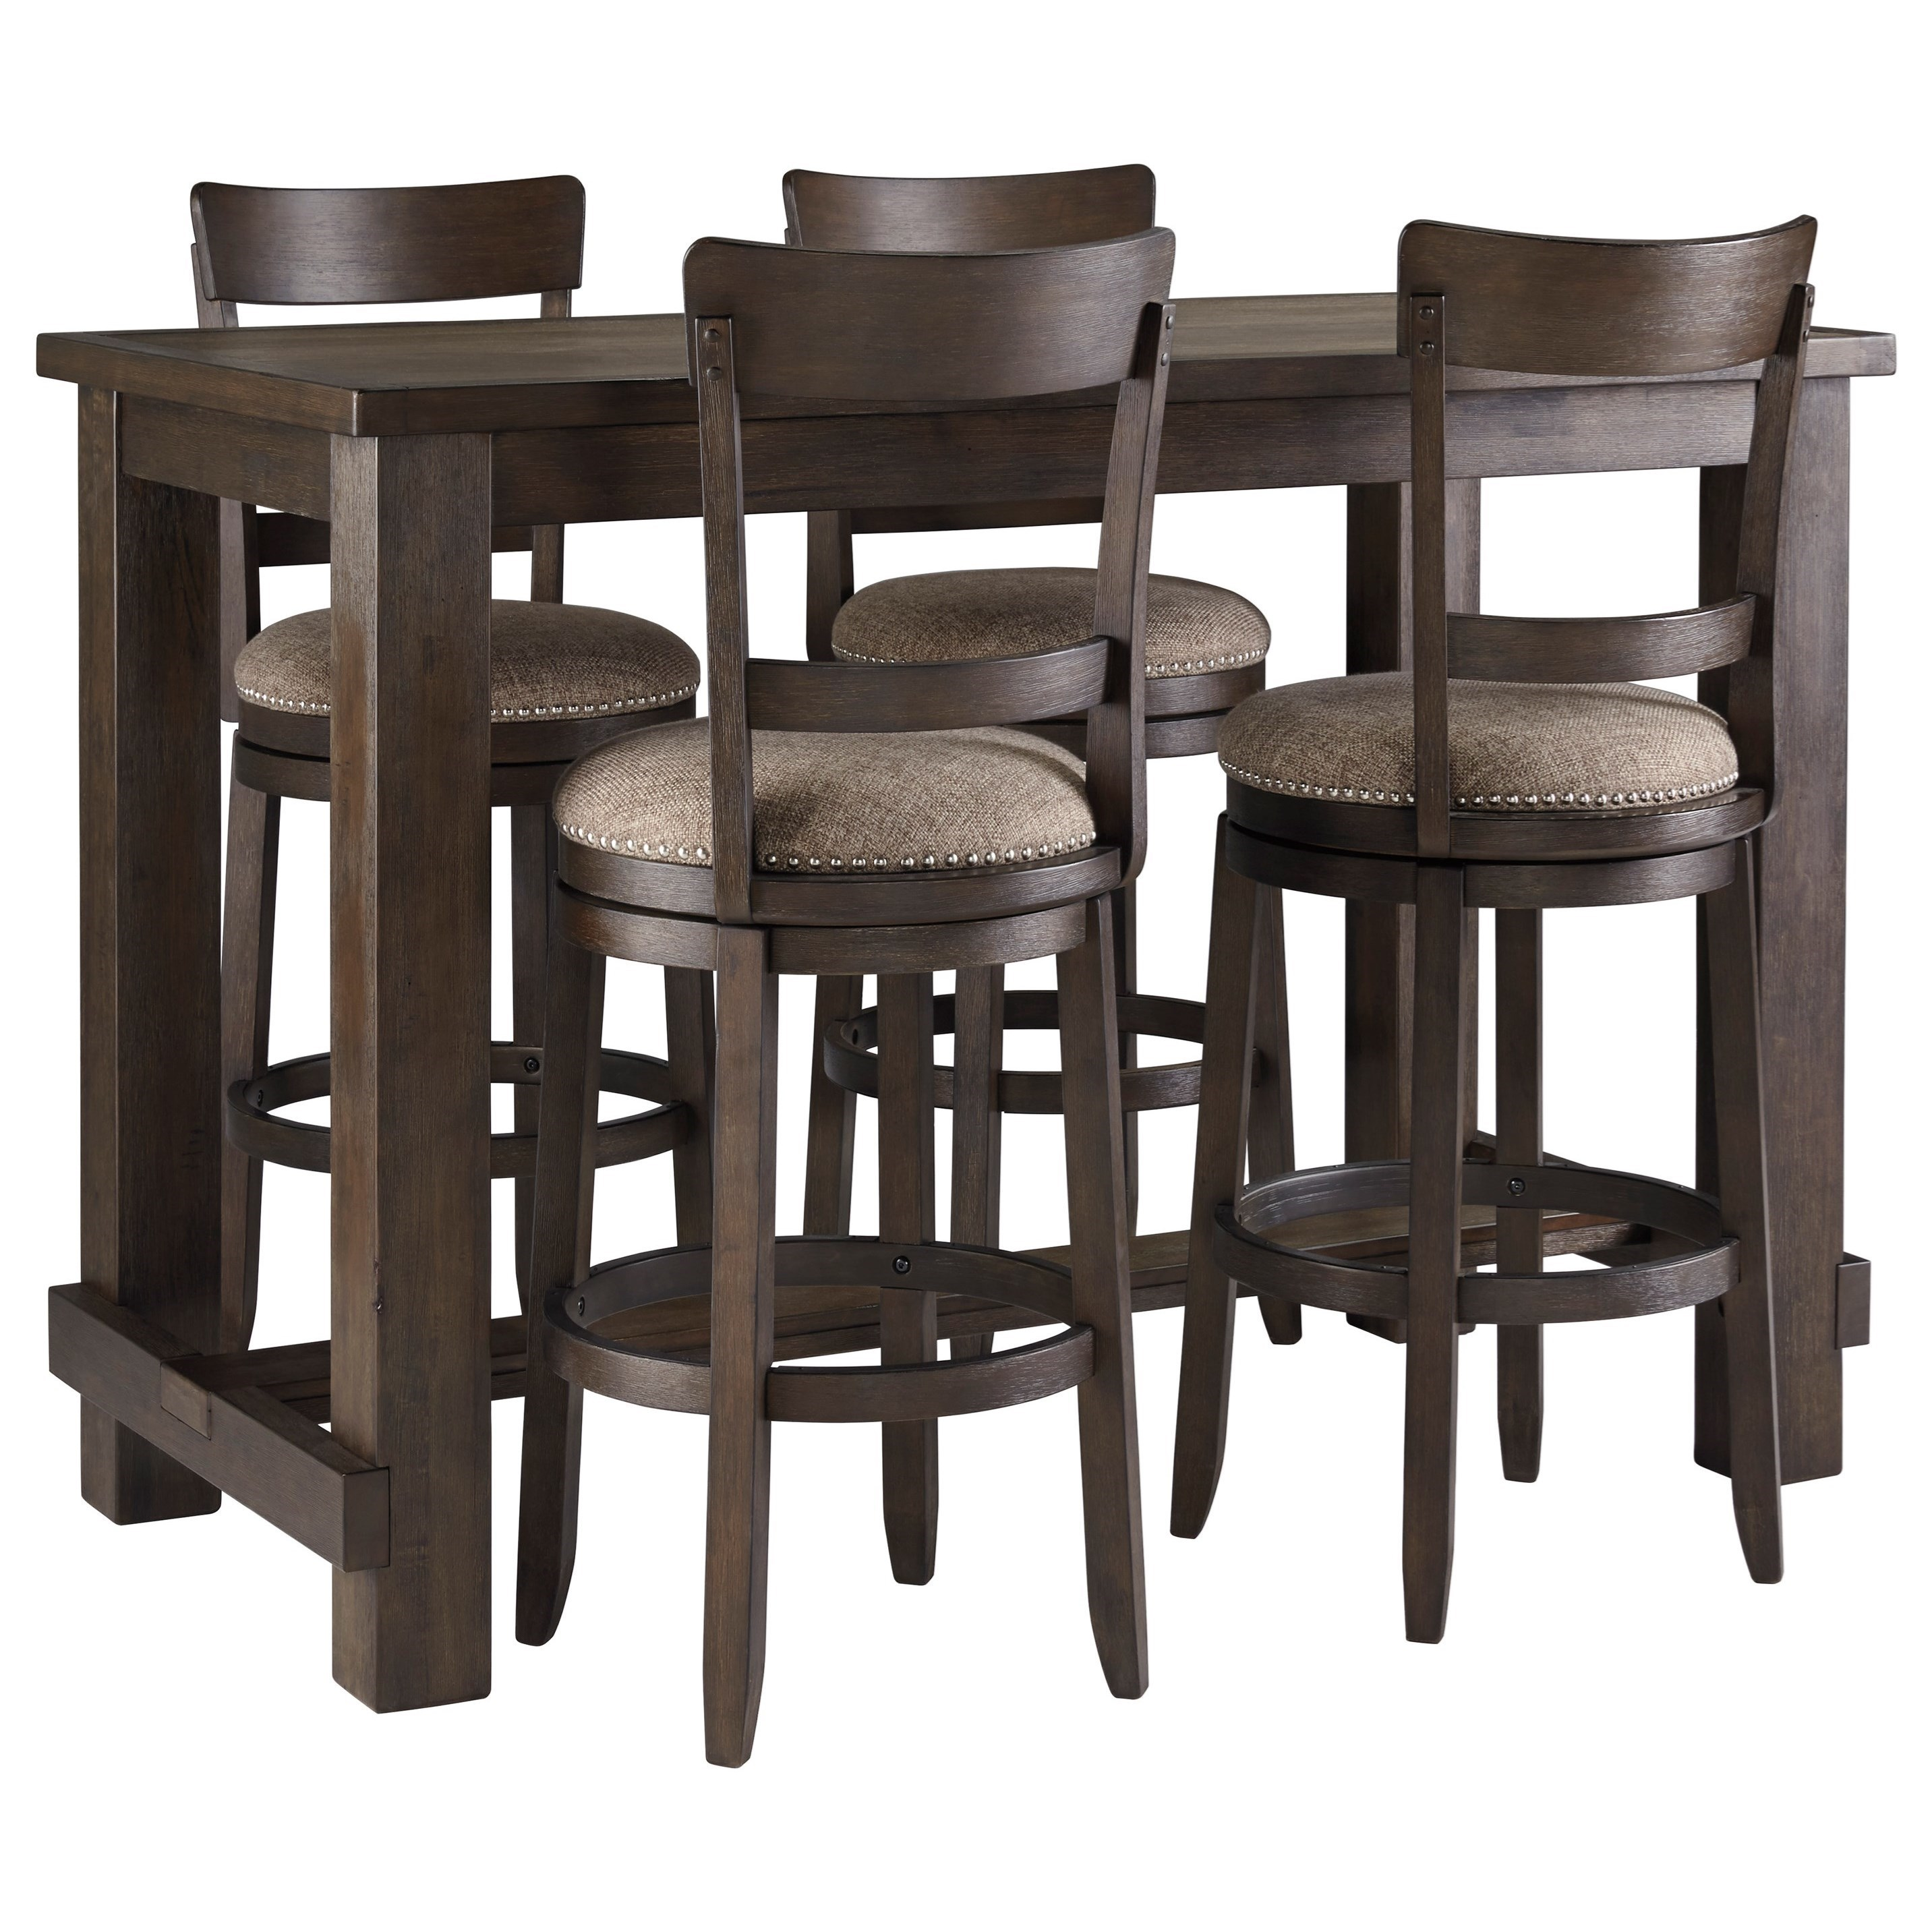 Table And Bar Stools Drewing Five Piece Chair Pub Table Set By Signature Design By Ashley At Value City Furniture